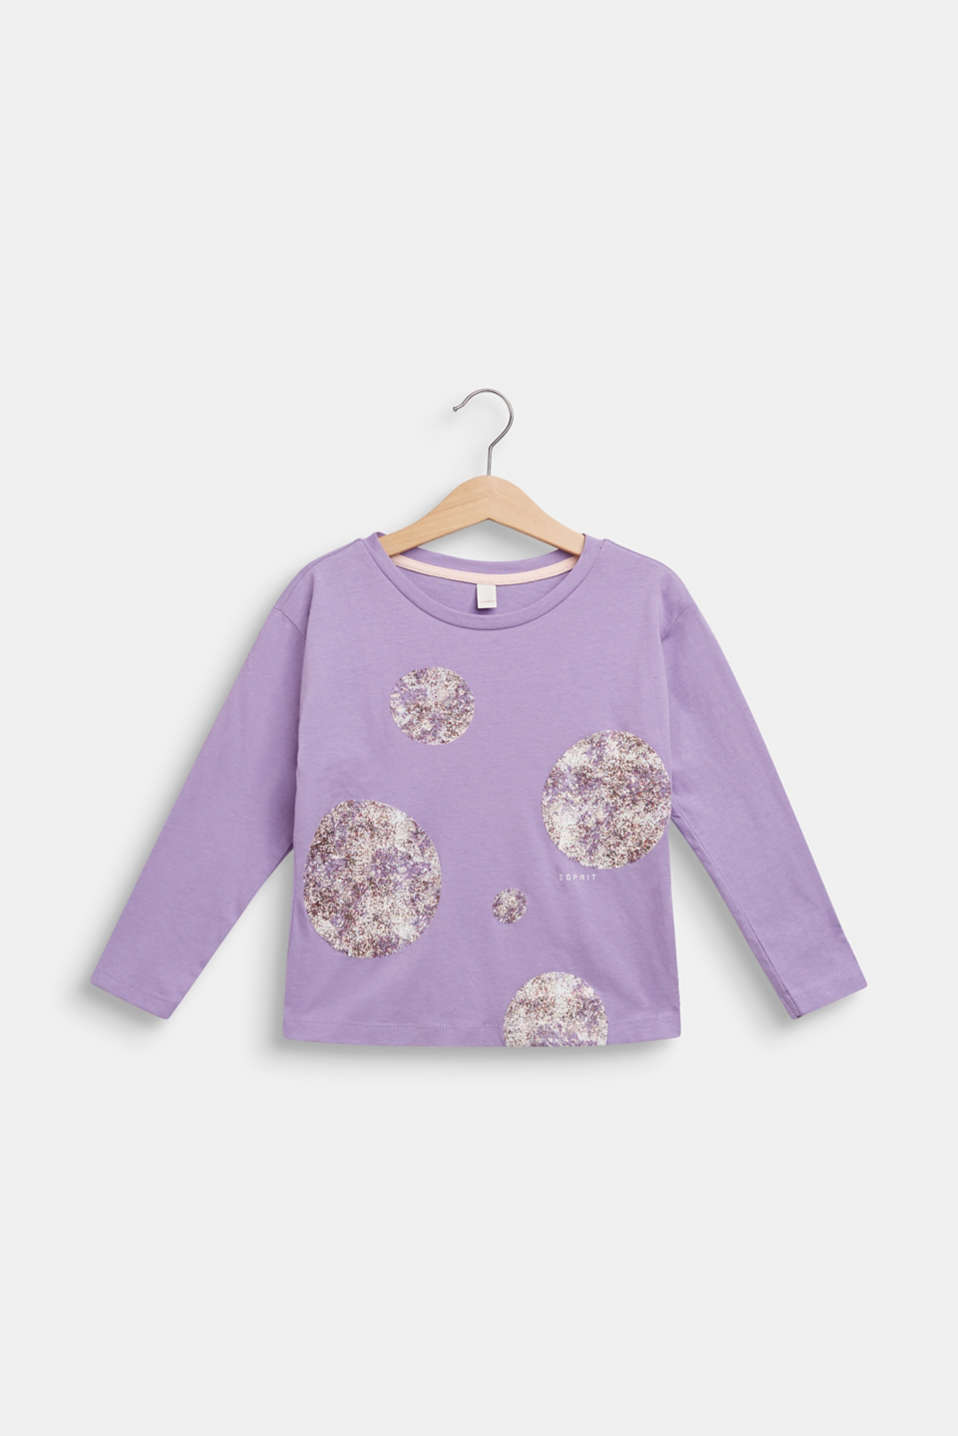 Long sleeve top with glitter polka dots, 100% cotton, BLOSSOM, detail image number 0